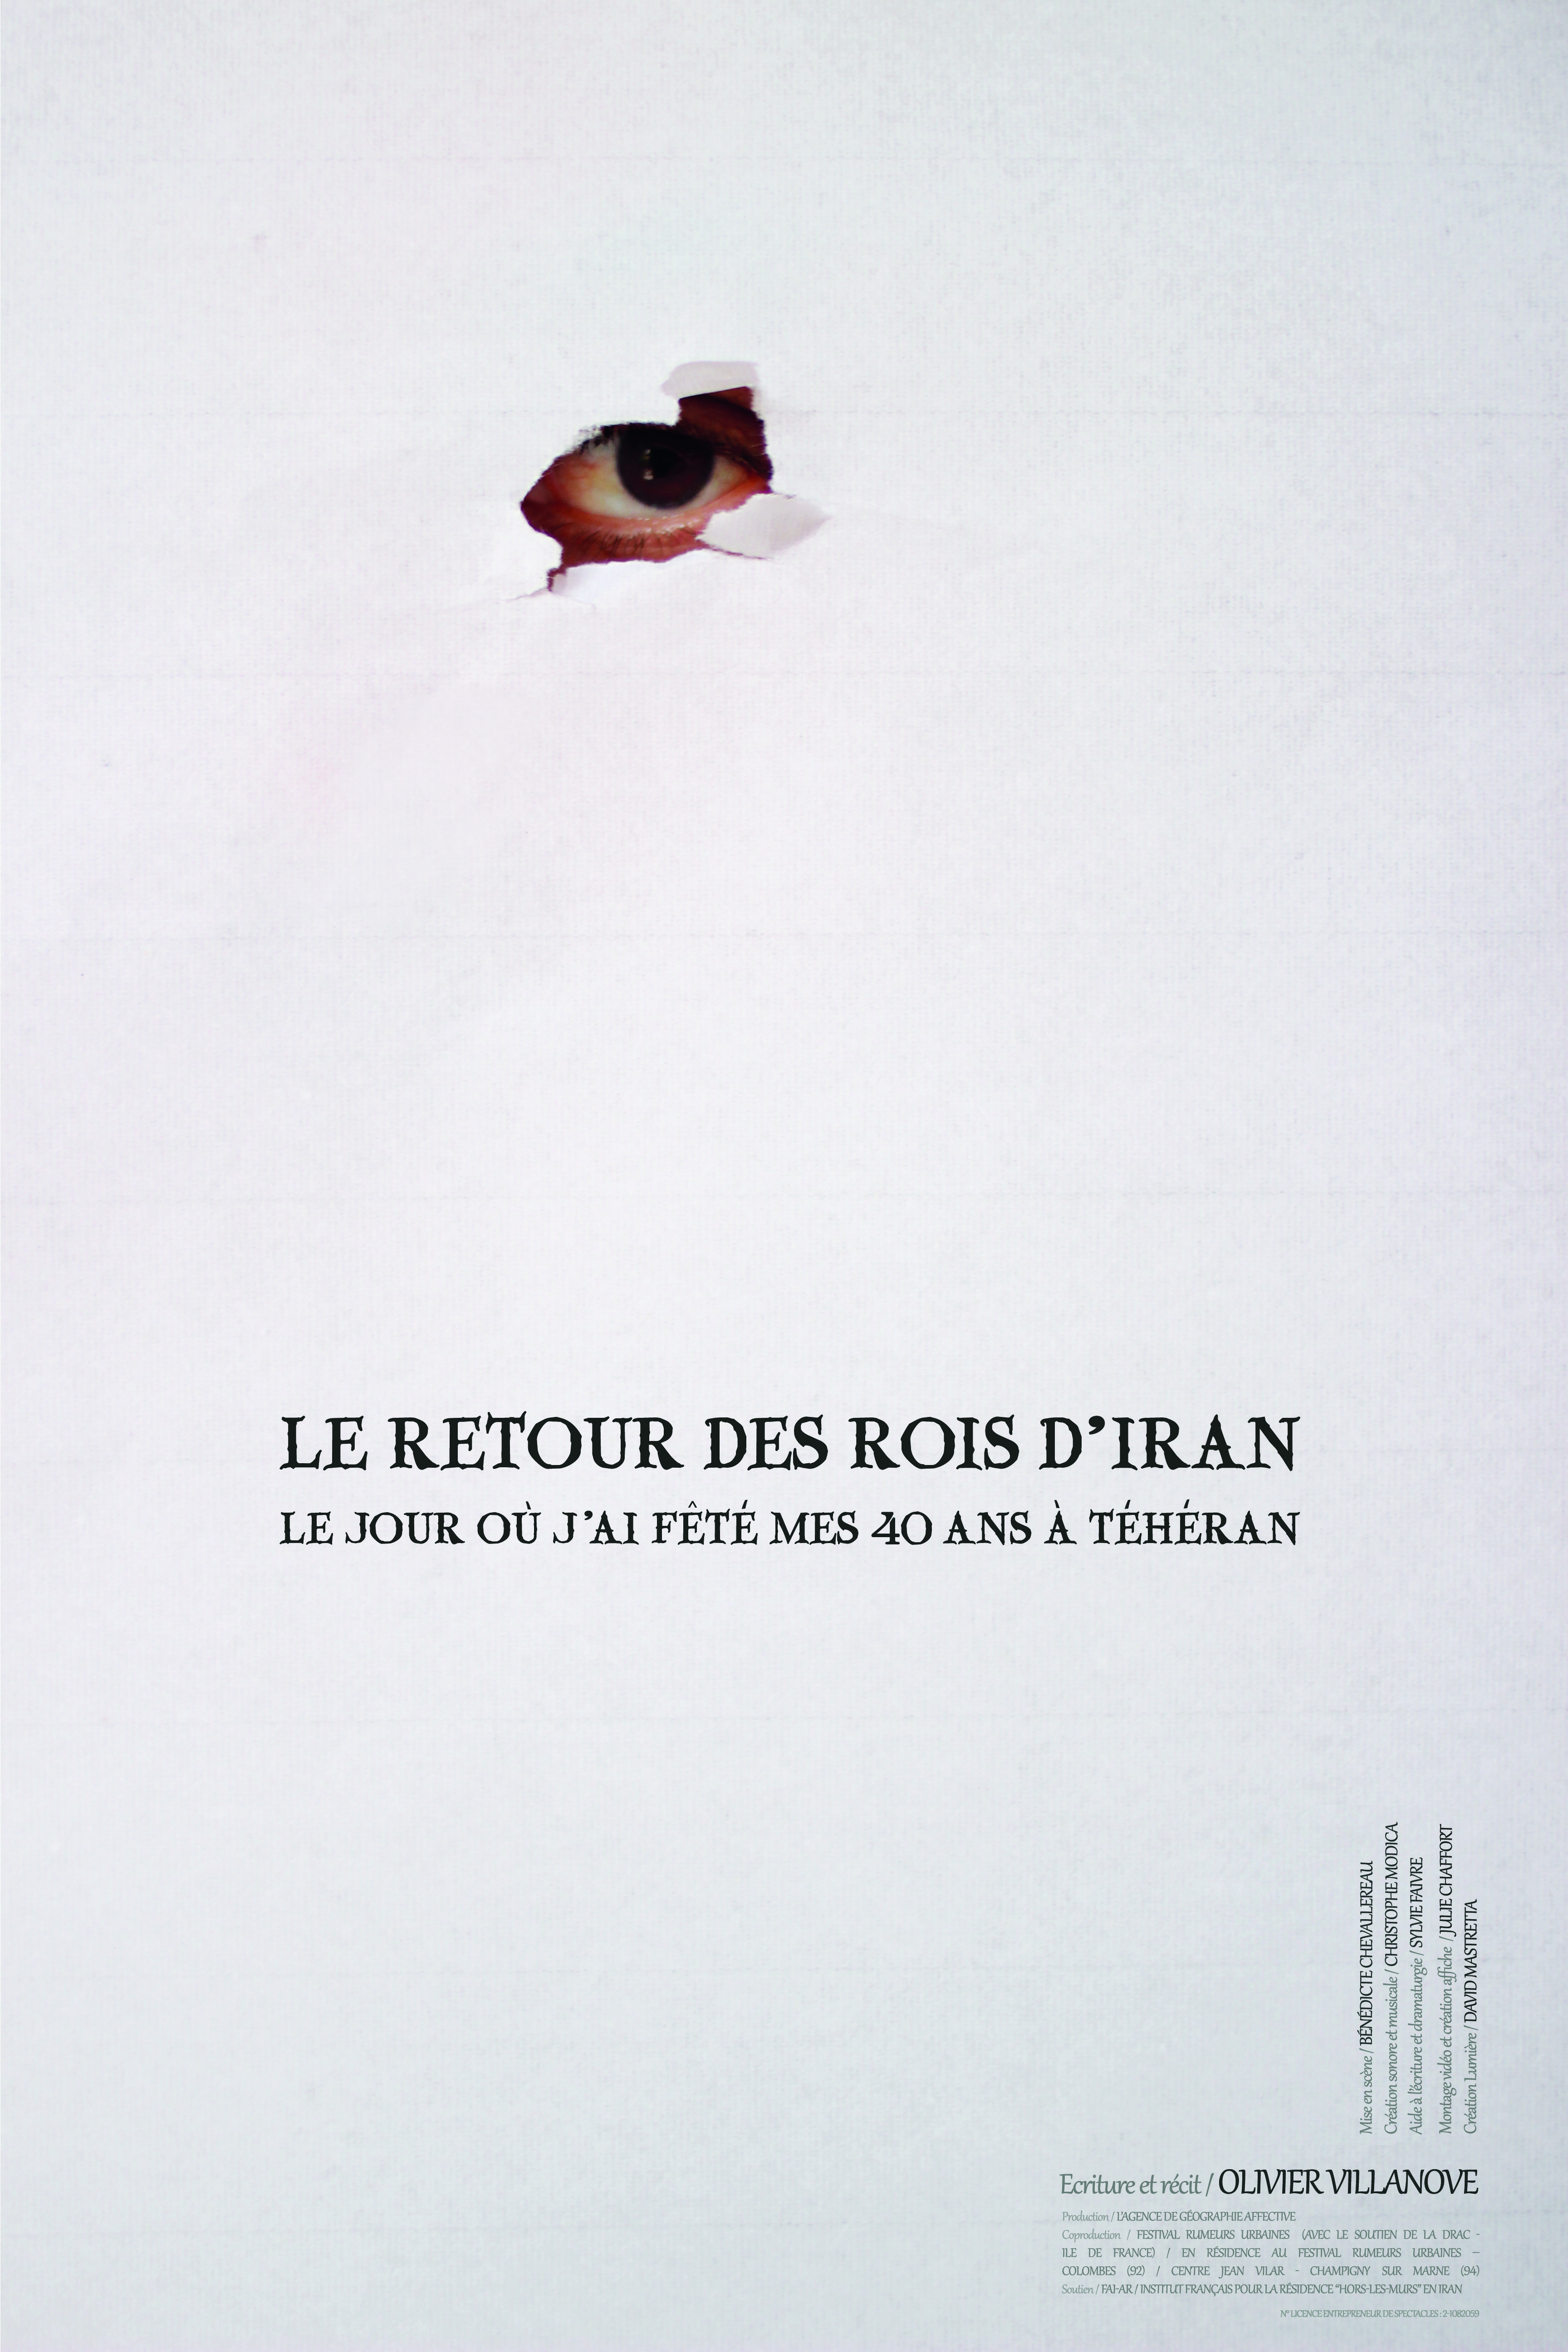 retour rois iran affiche spectacle agence geographie affective julie chaffort